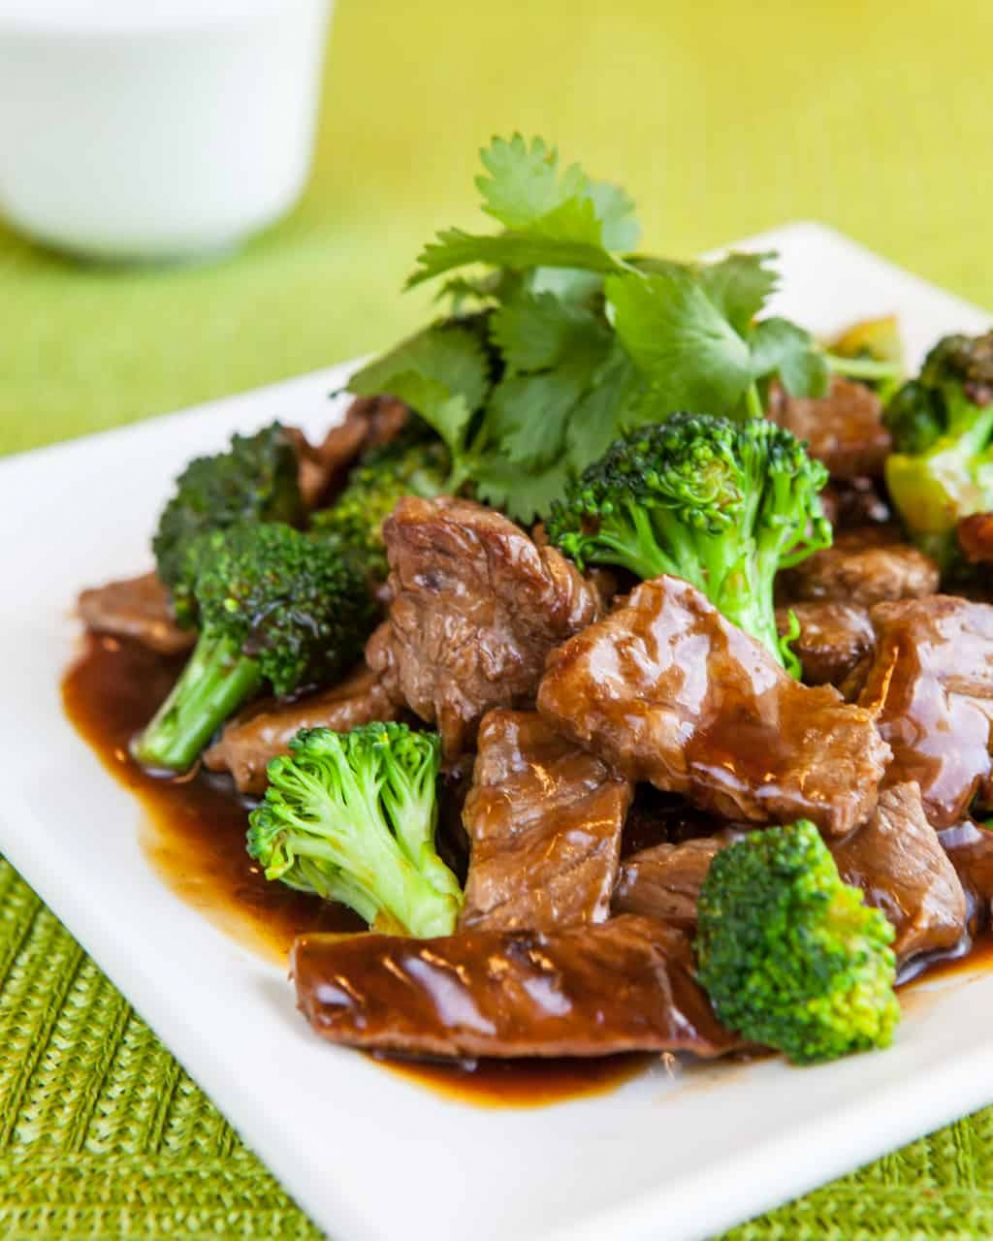 Chinese Broccoli Beef Recipe - Recipes Beef And Broccoli